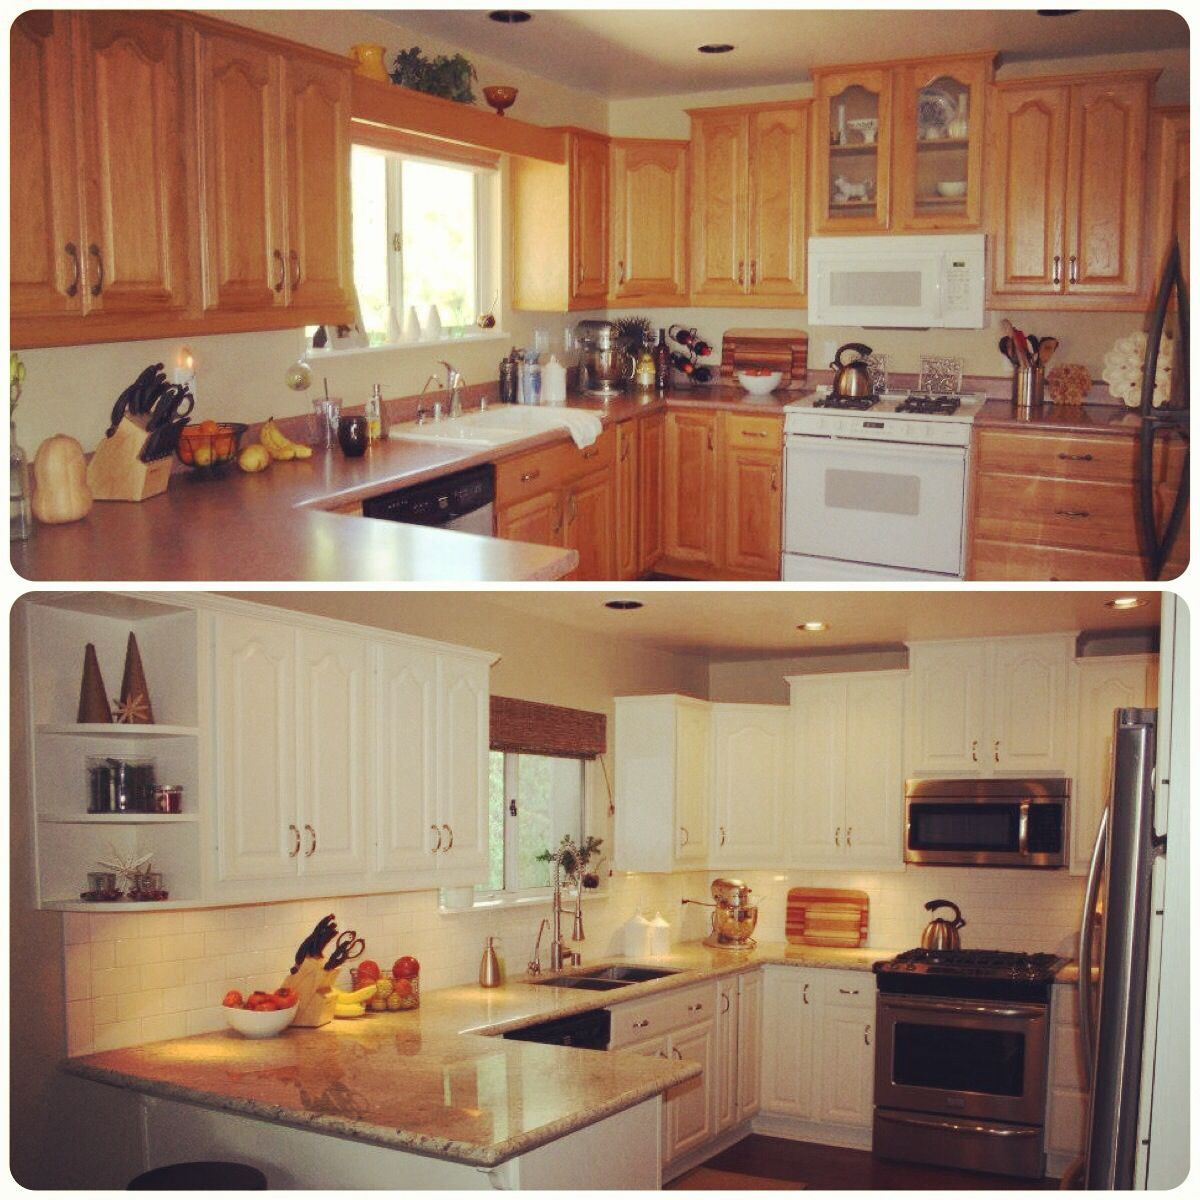 Kitchen Remodel Before And After  Before and after kitchen remodel For the Home